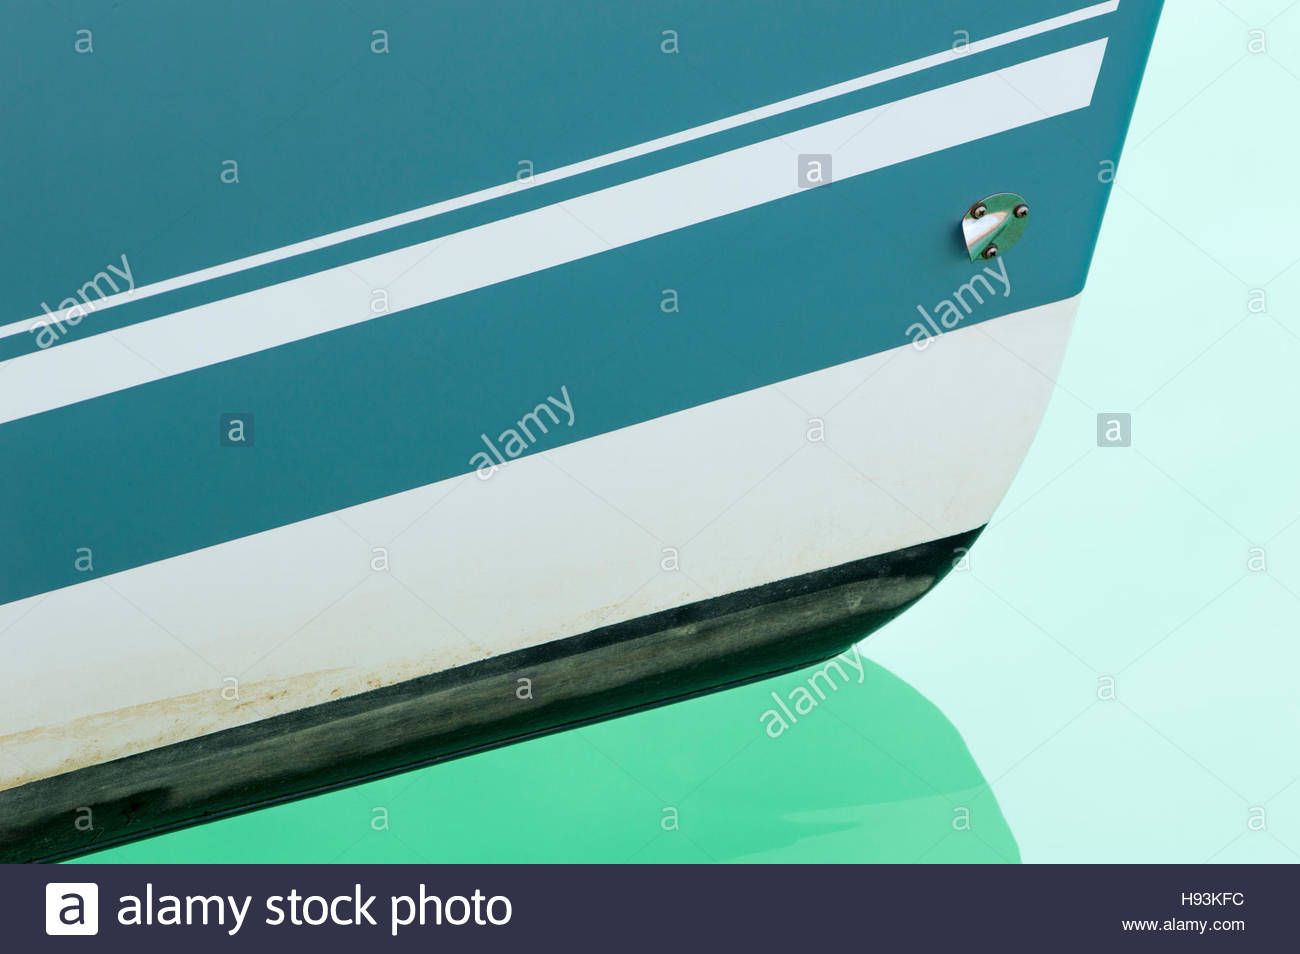 Close-up of the prow and its reflection in the clear waters of Weymouth Marina, Dorset, England - Stock Image